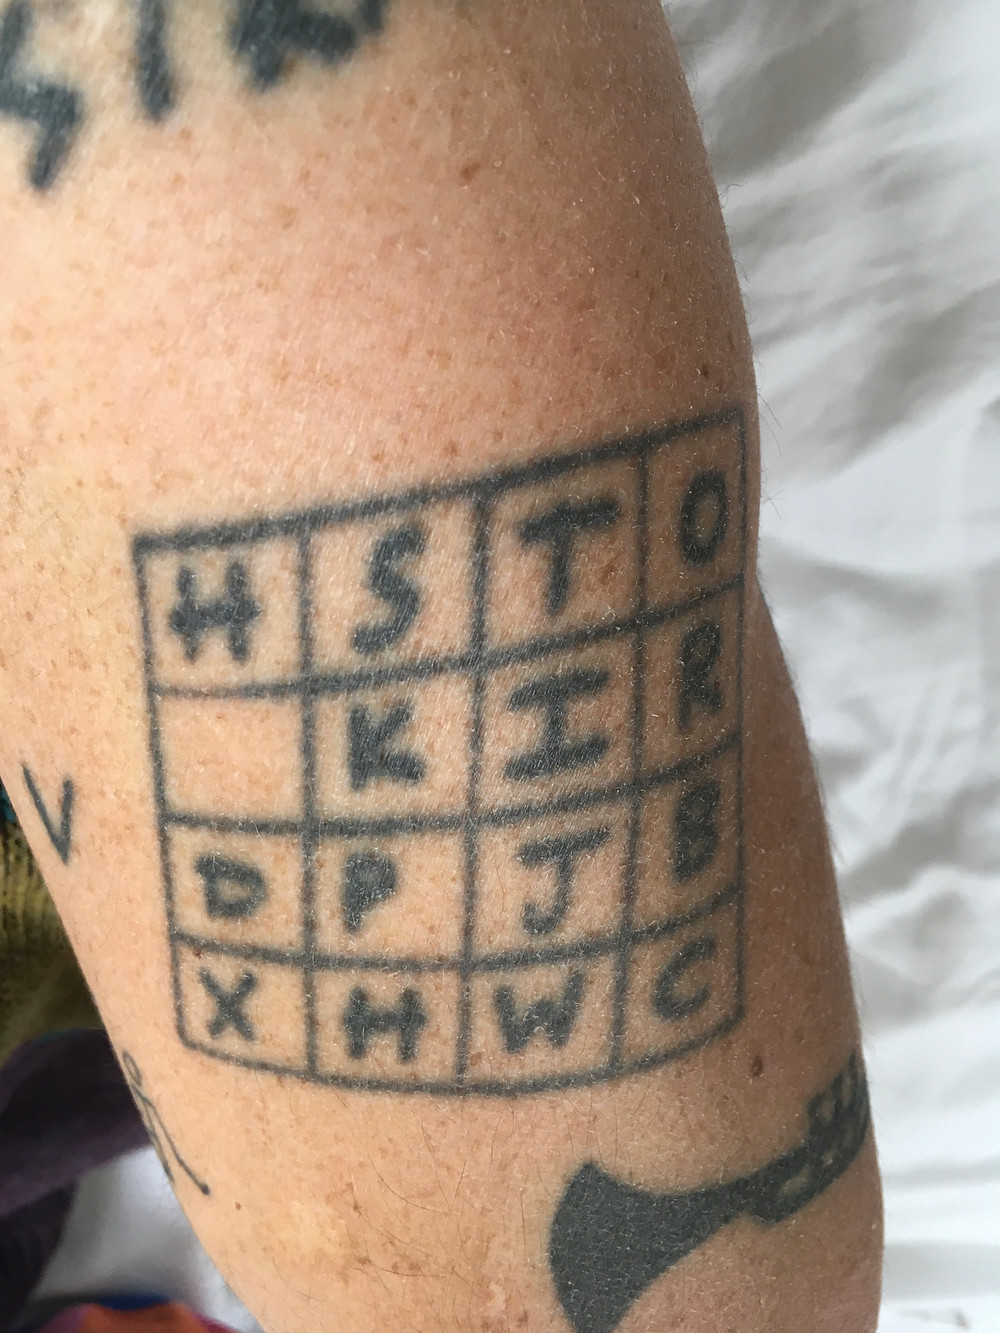 A tattoo like a crossword with letters